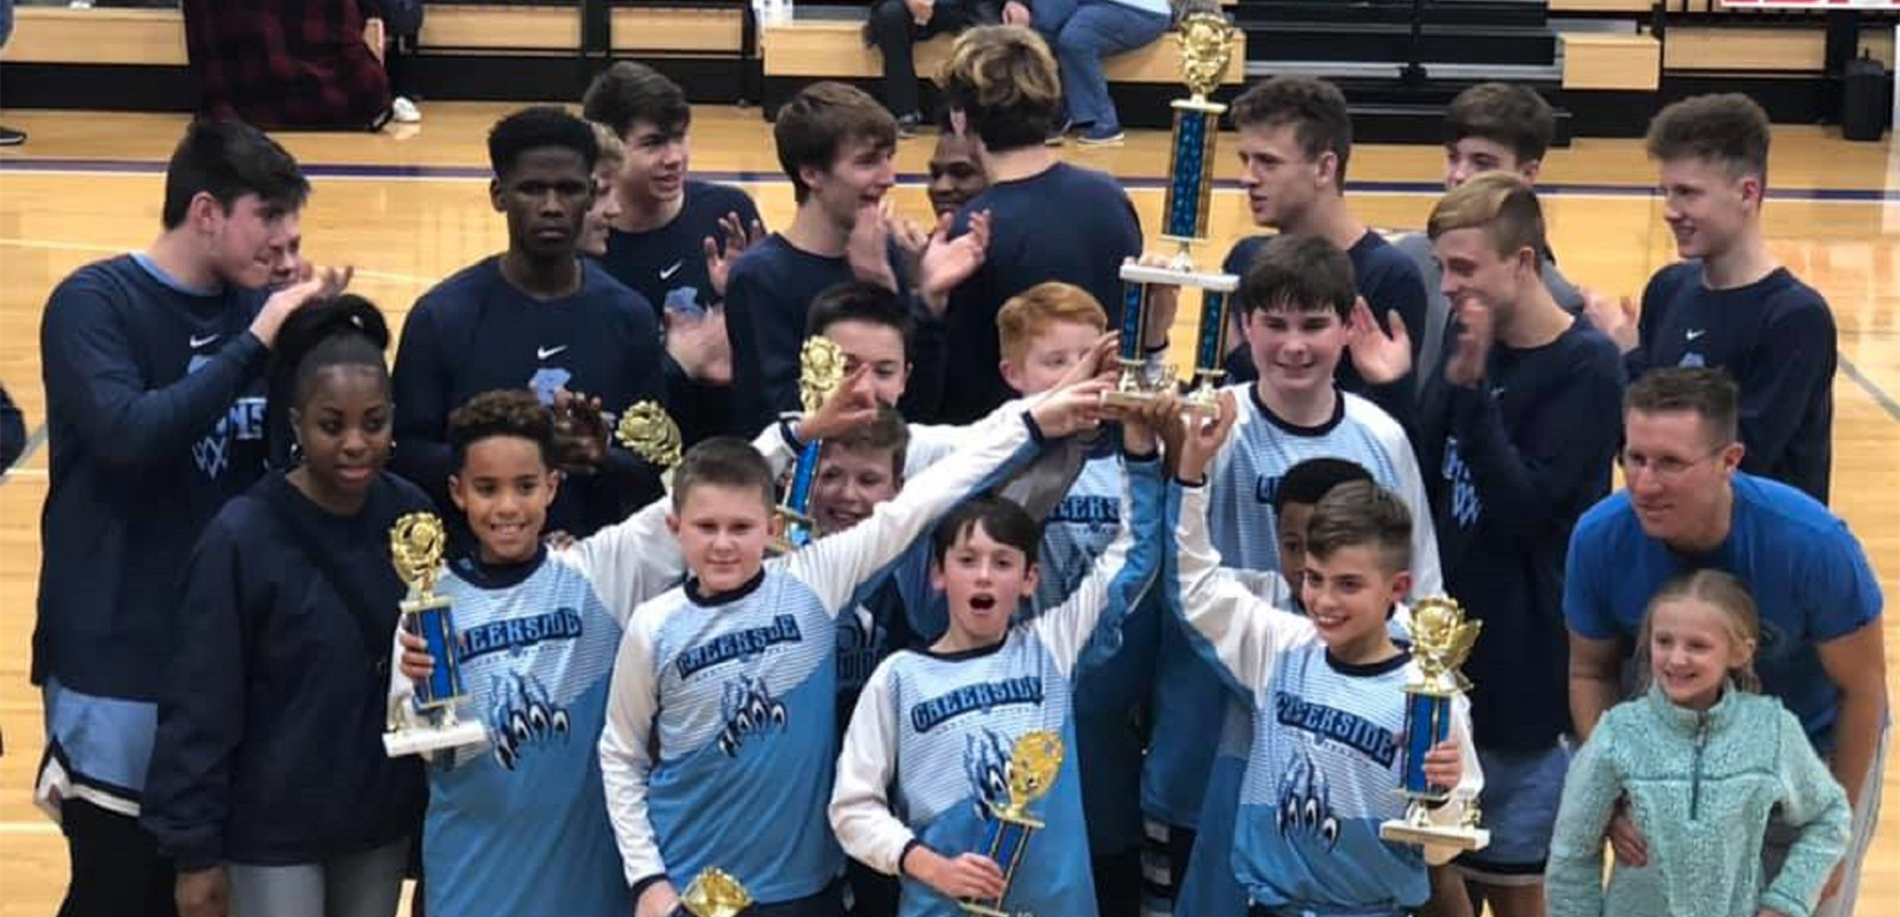 Creekside Bruins 5th grade boys basketball team holding their championship trophy.